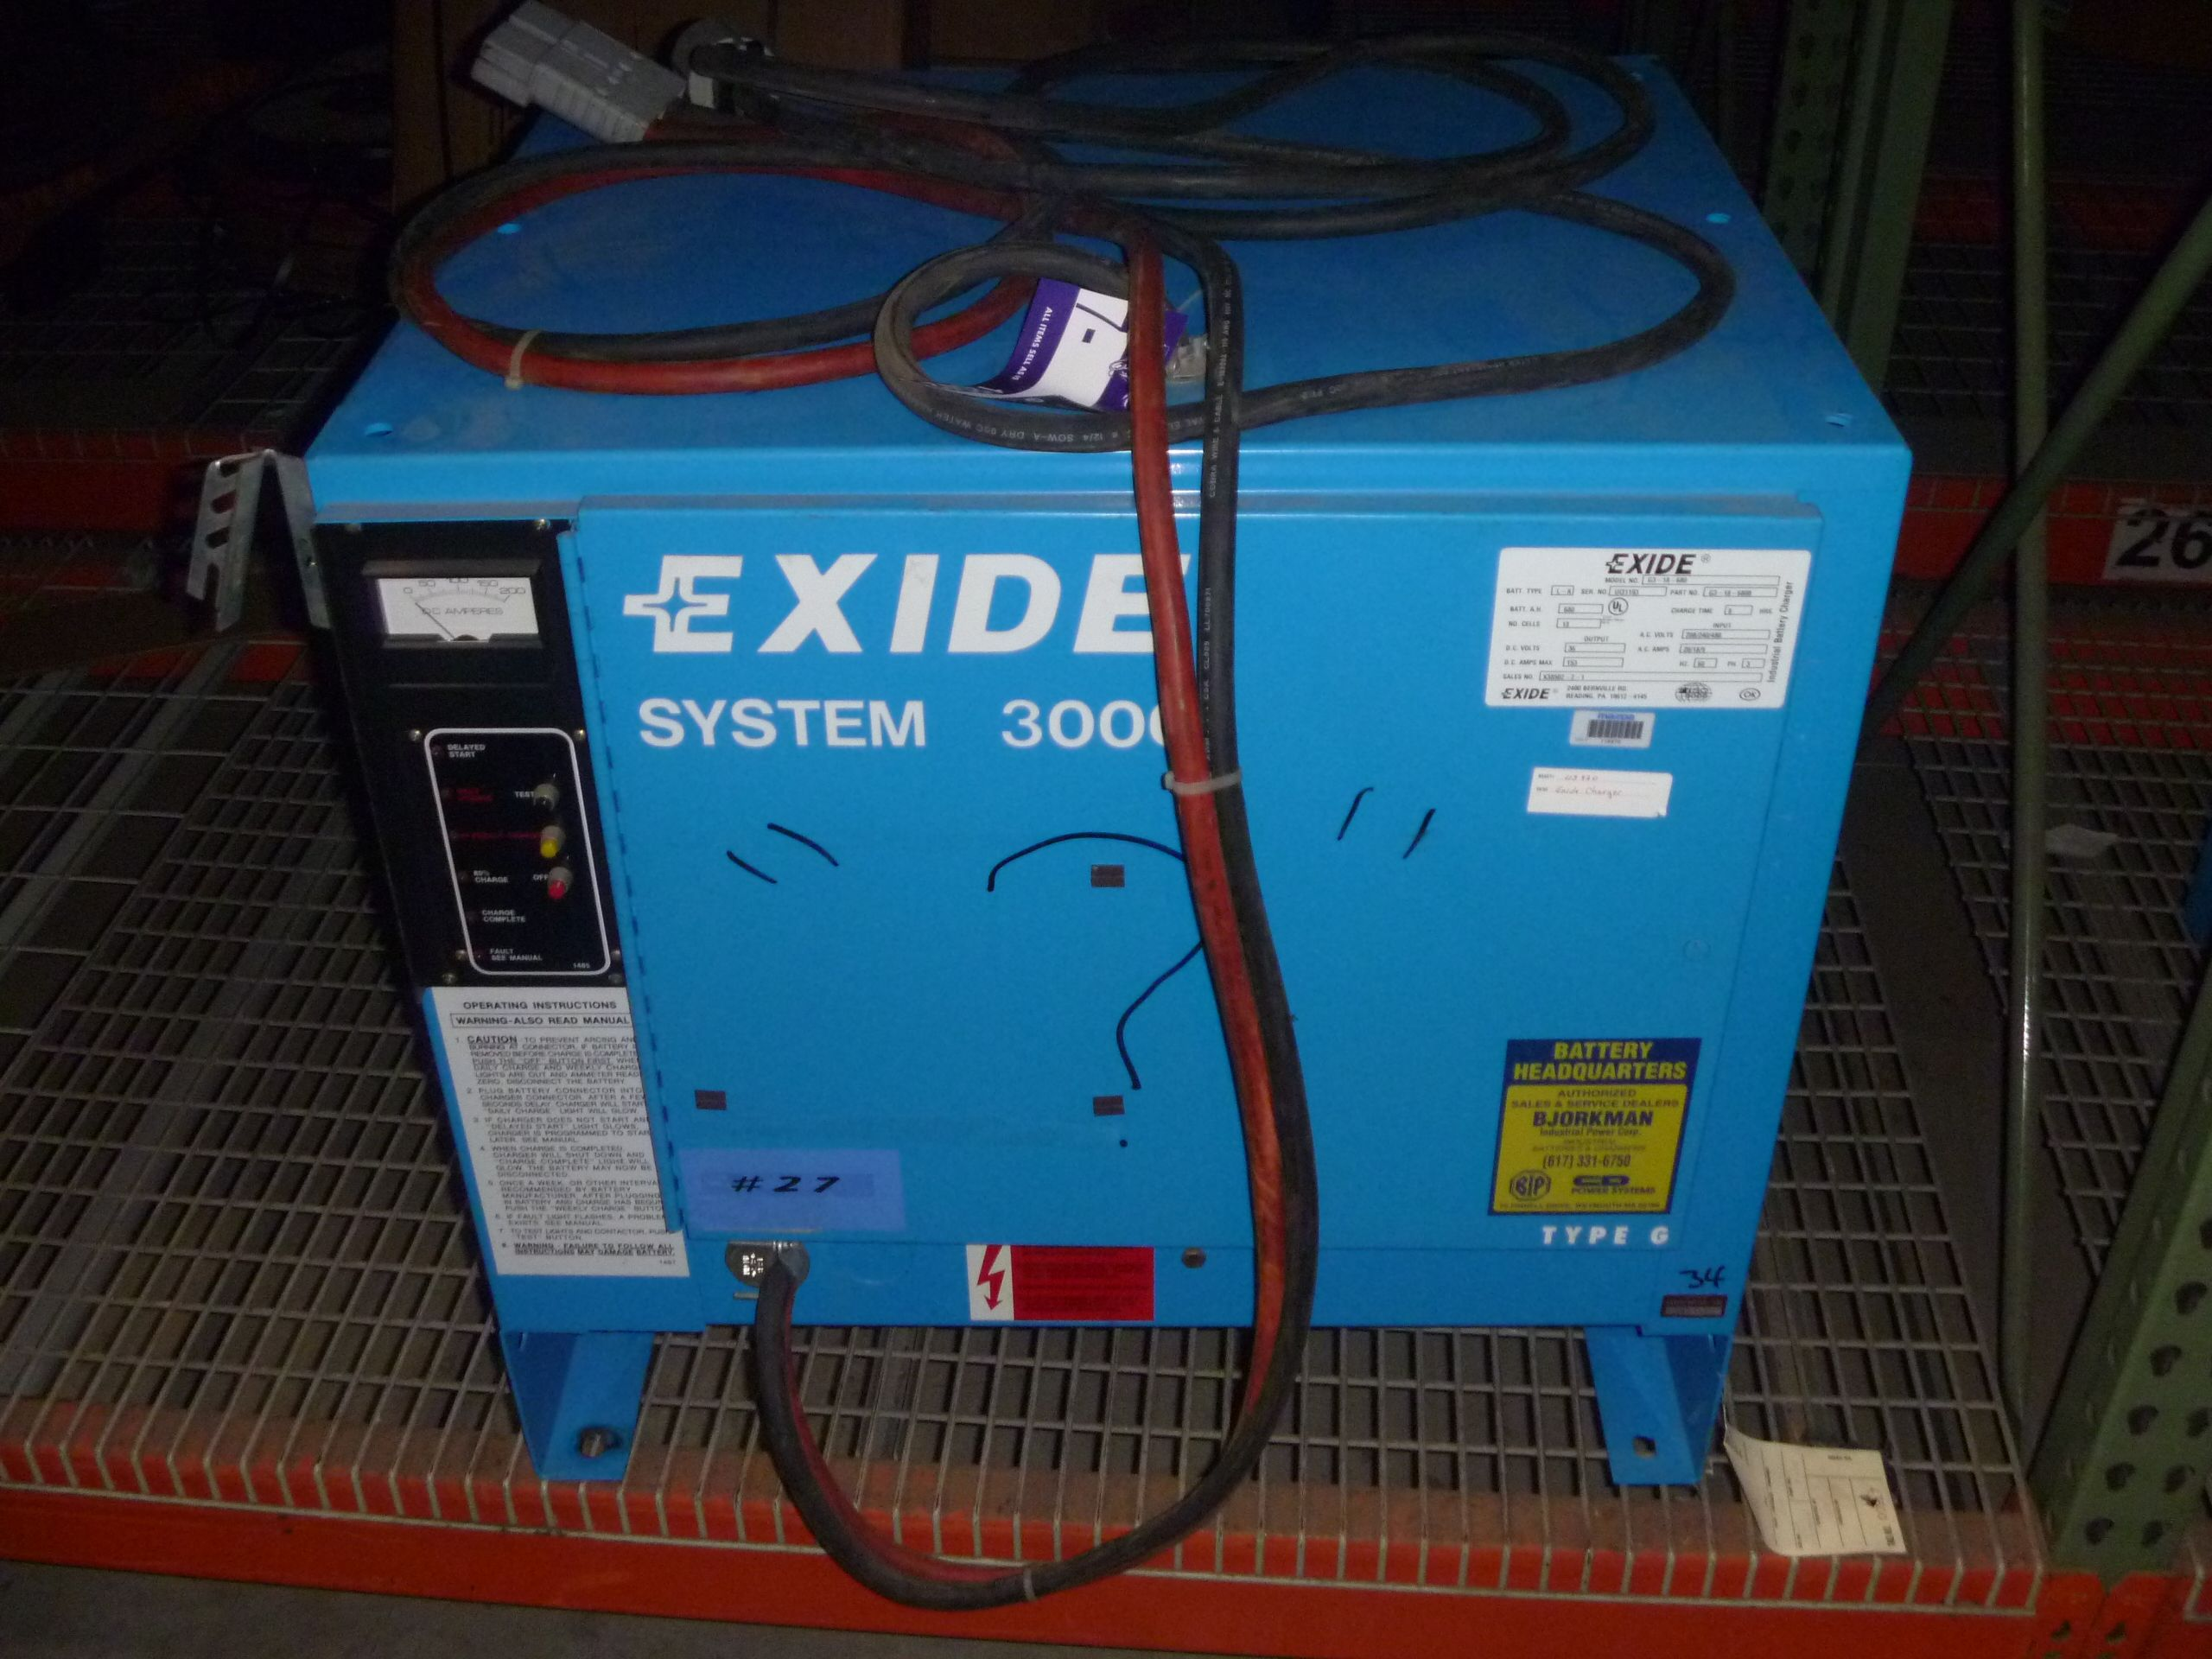 Exide System 3000 36volt Battery Charger, model G3-18-680B, battery type  L-A, 60hz, 3ph, 8 hr charge time, Batt Ha 680. Up for auction this  September ...